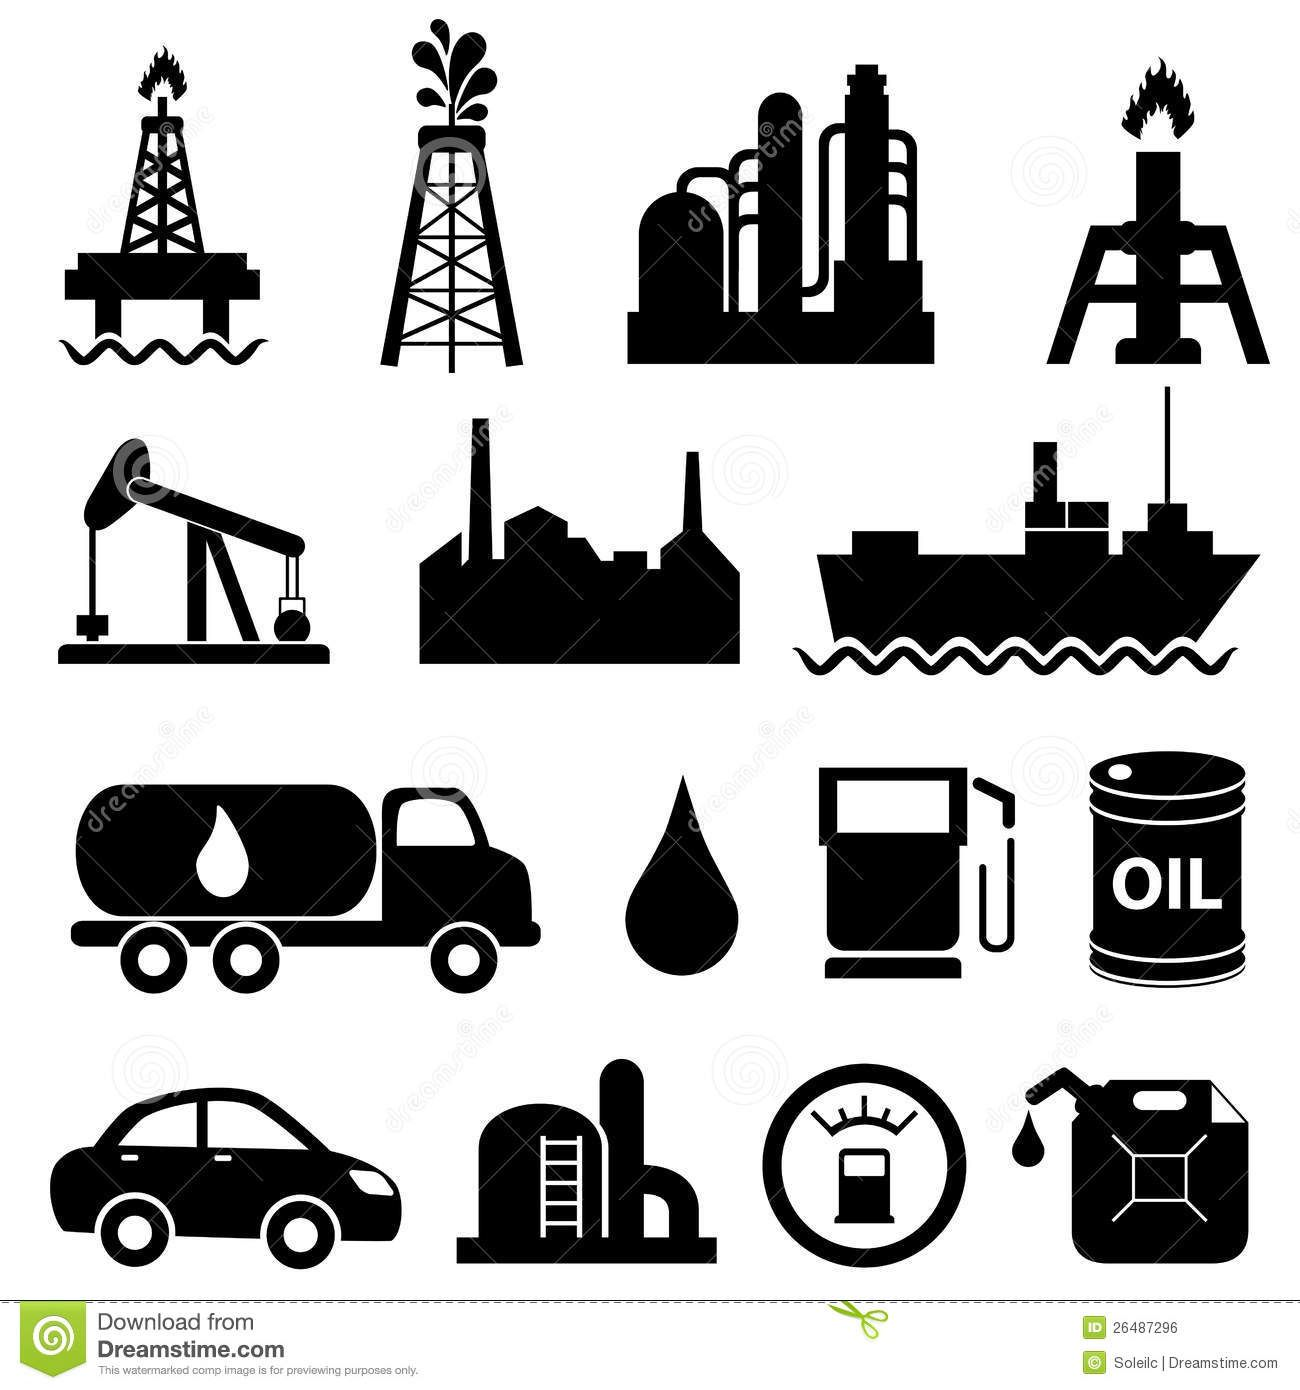 INDUSTRY ENERGY Oil Industry Icon Set Royalty Free Stock